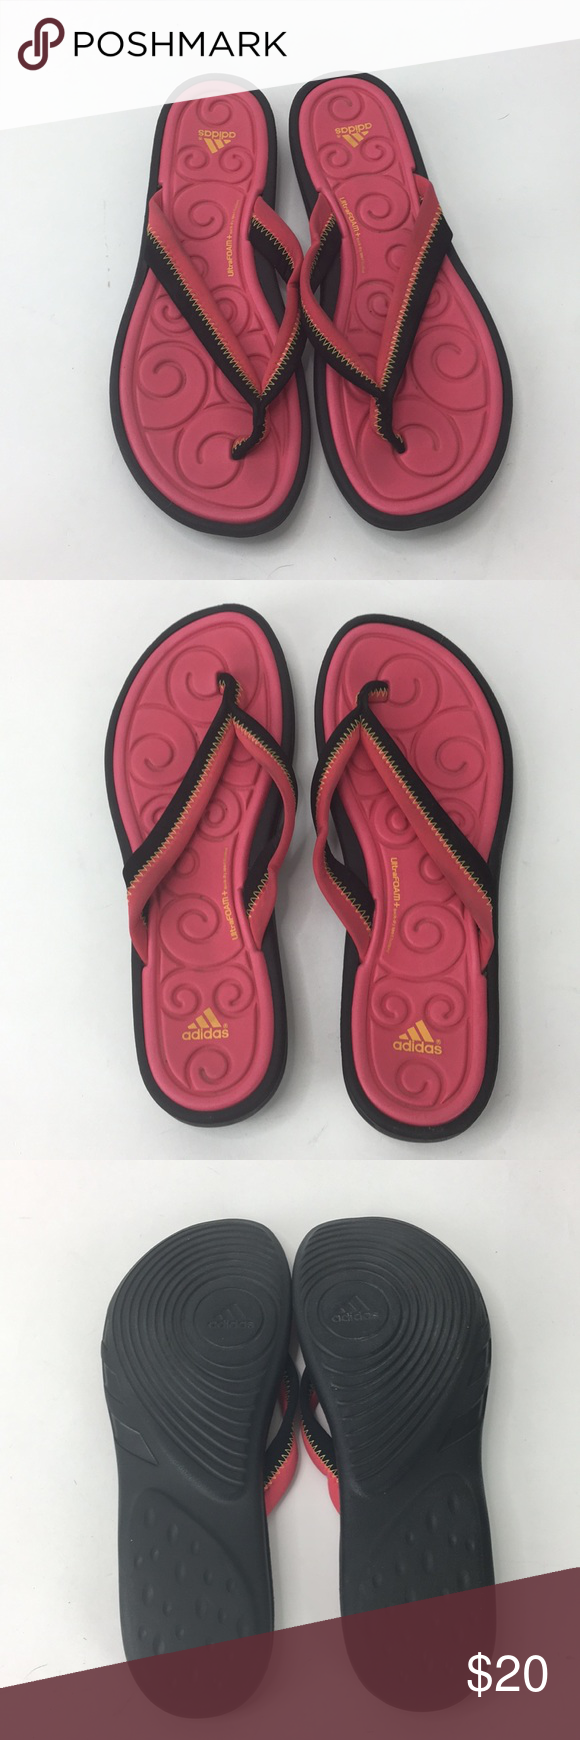 2c3971bac757 Adidas Ultra Foam Thong Flip Flops Quick Dry Sport Pre-owned gently used  condition. Quick dry sport bed. Please see all pictures. adidas Shoes